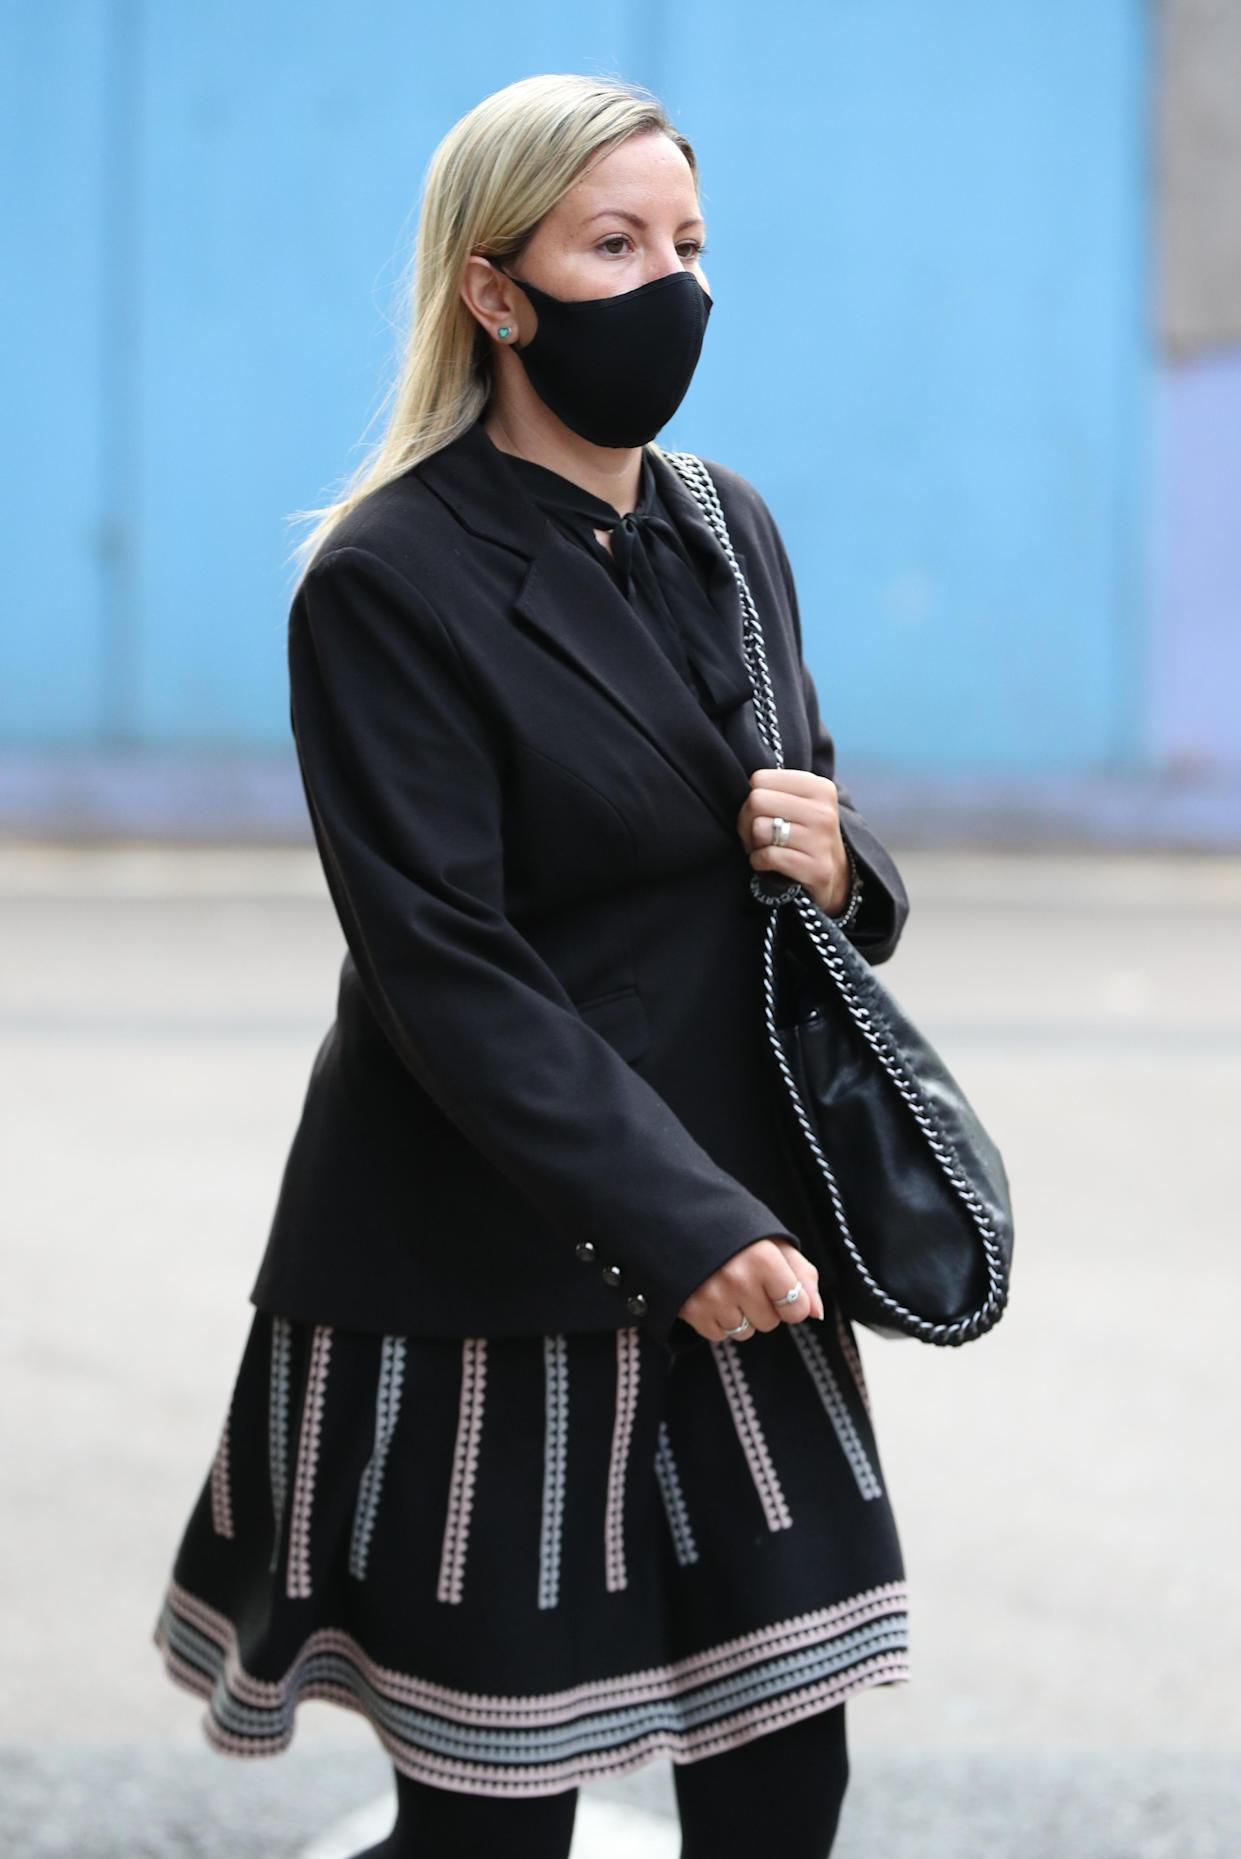 Teacher Kandice Barber, 35, arrives at Aylesbury Crown Court, Buckinghamshire, where she is appearing accused of engaging in illegal sexual activity with a 15-year-old boy.